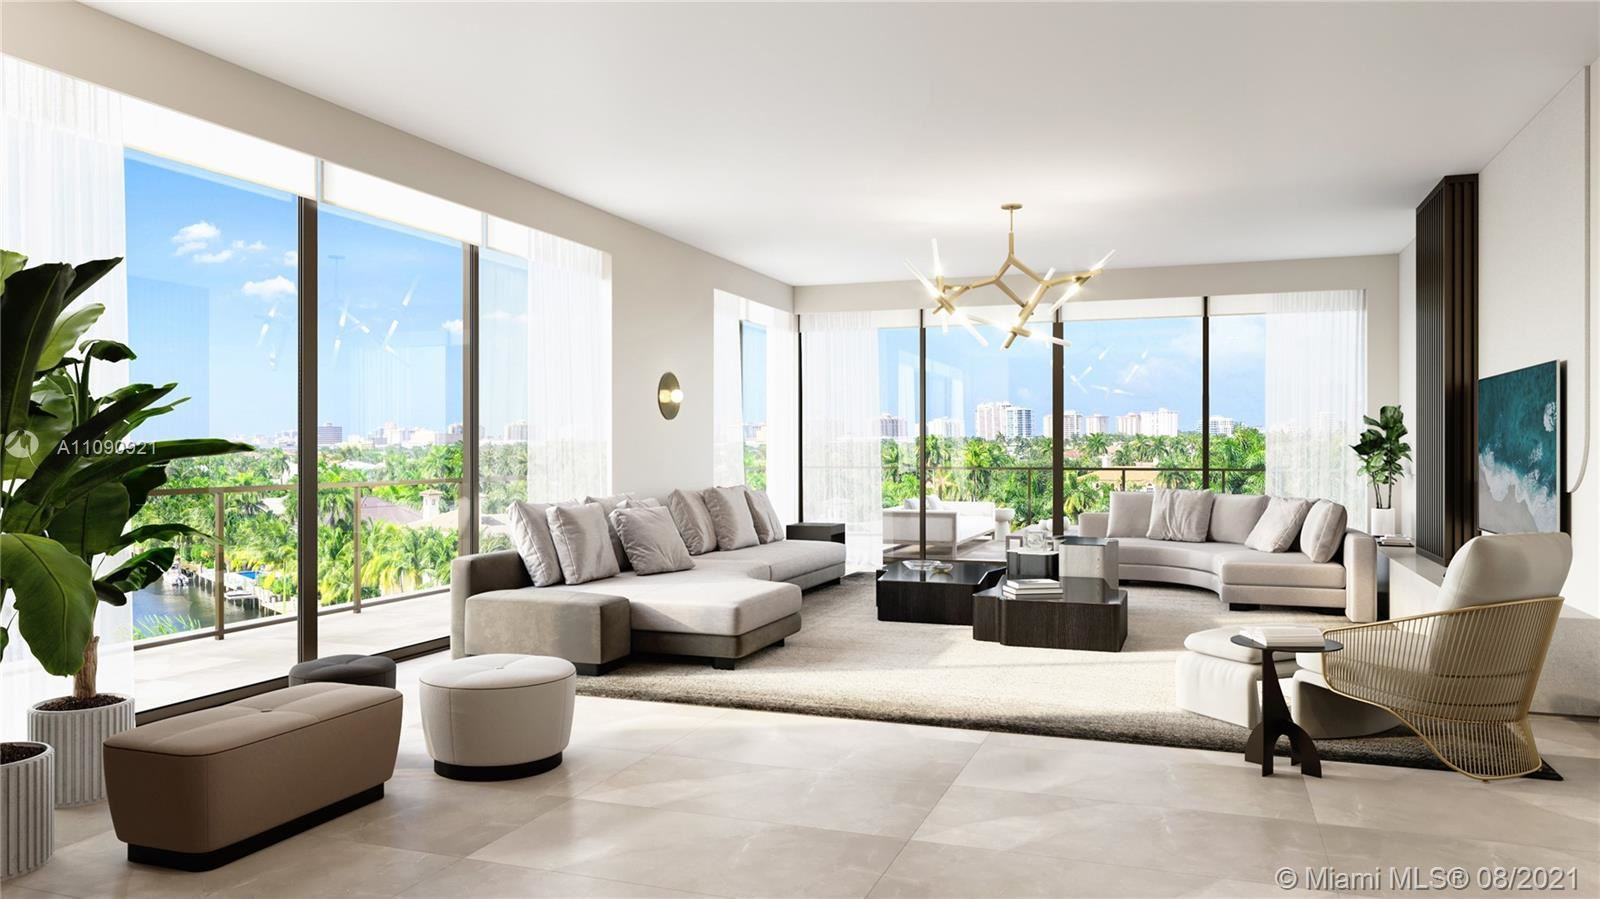 160 Isle Of Venice Dr. #401, Fort Lauderdale, FL 33301 - #: A11090921